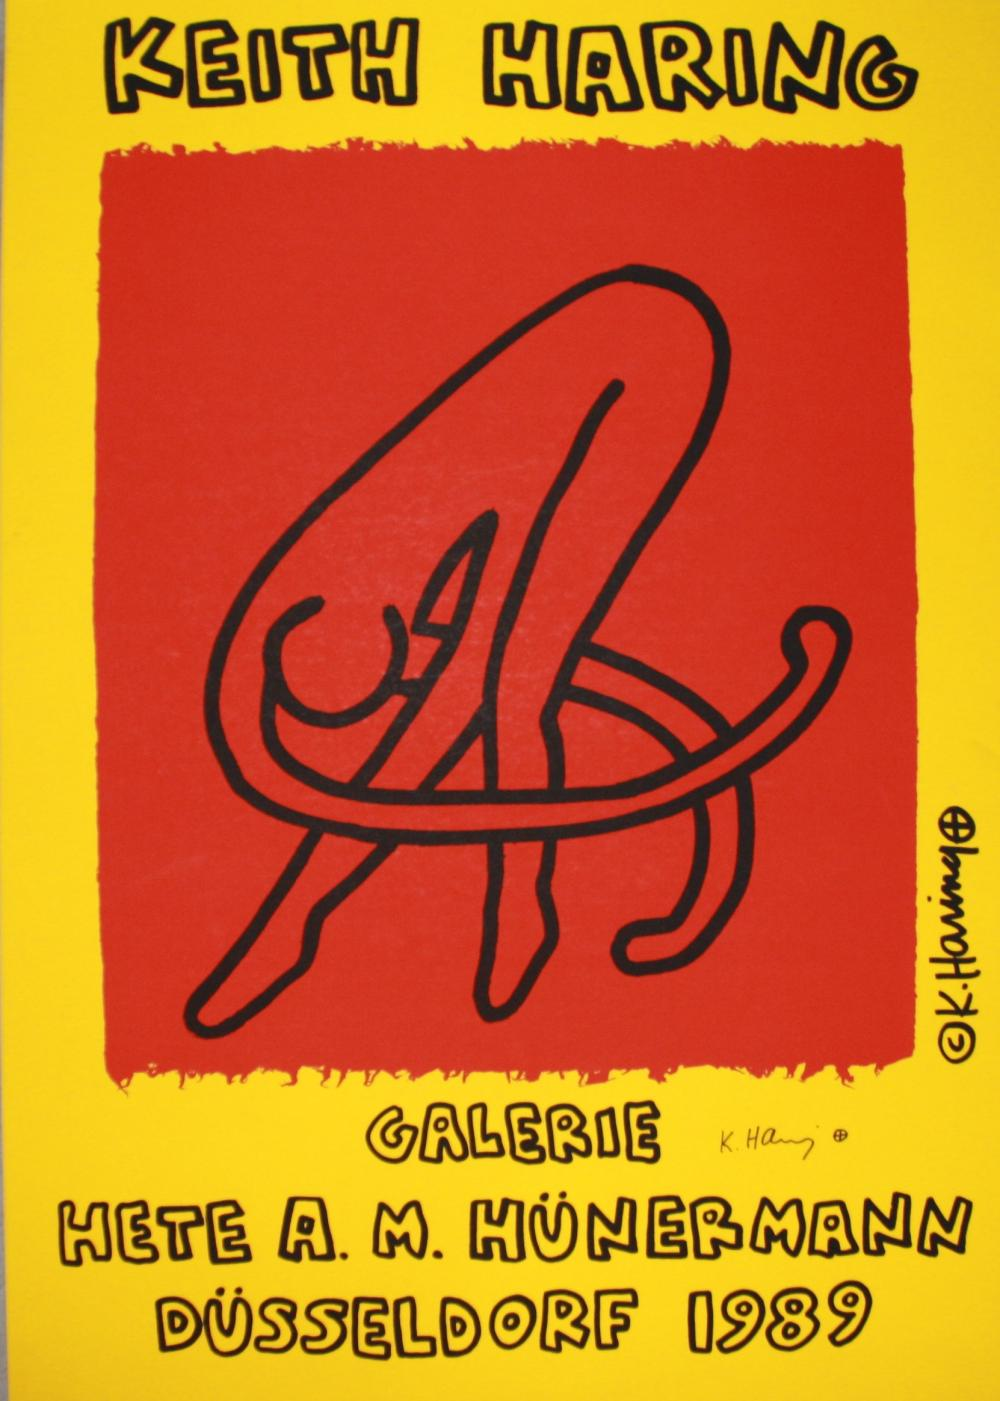 Keith Haring, Hand Signed Vintage Exhibition Announcement